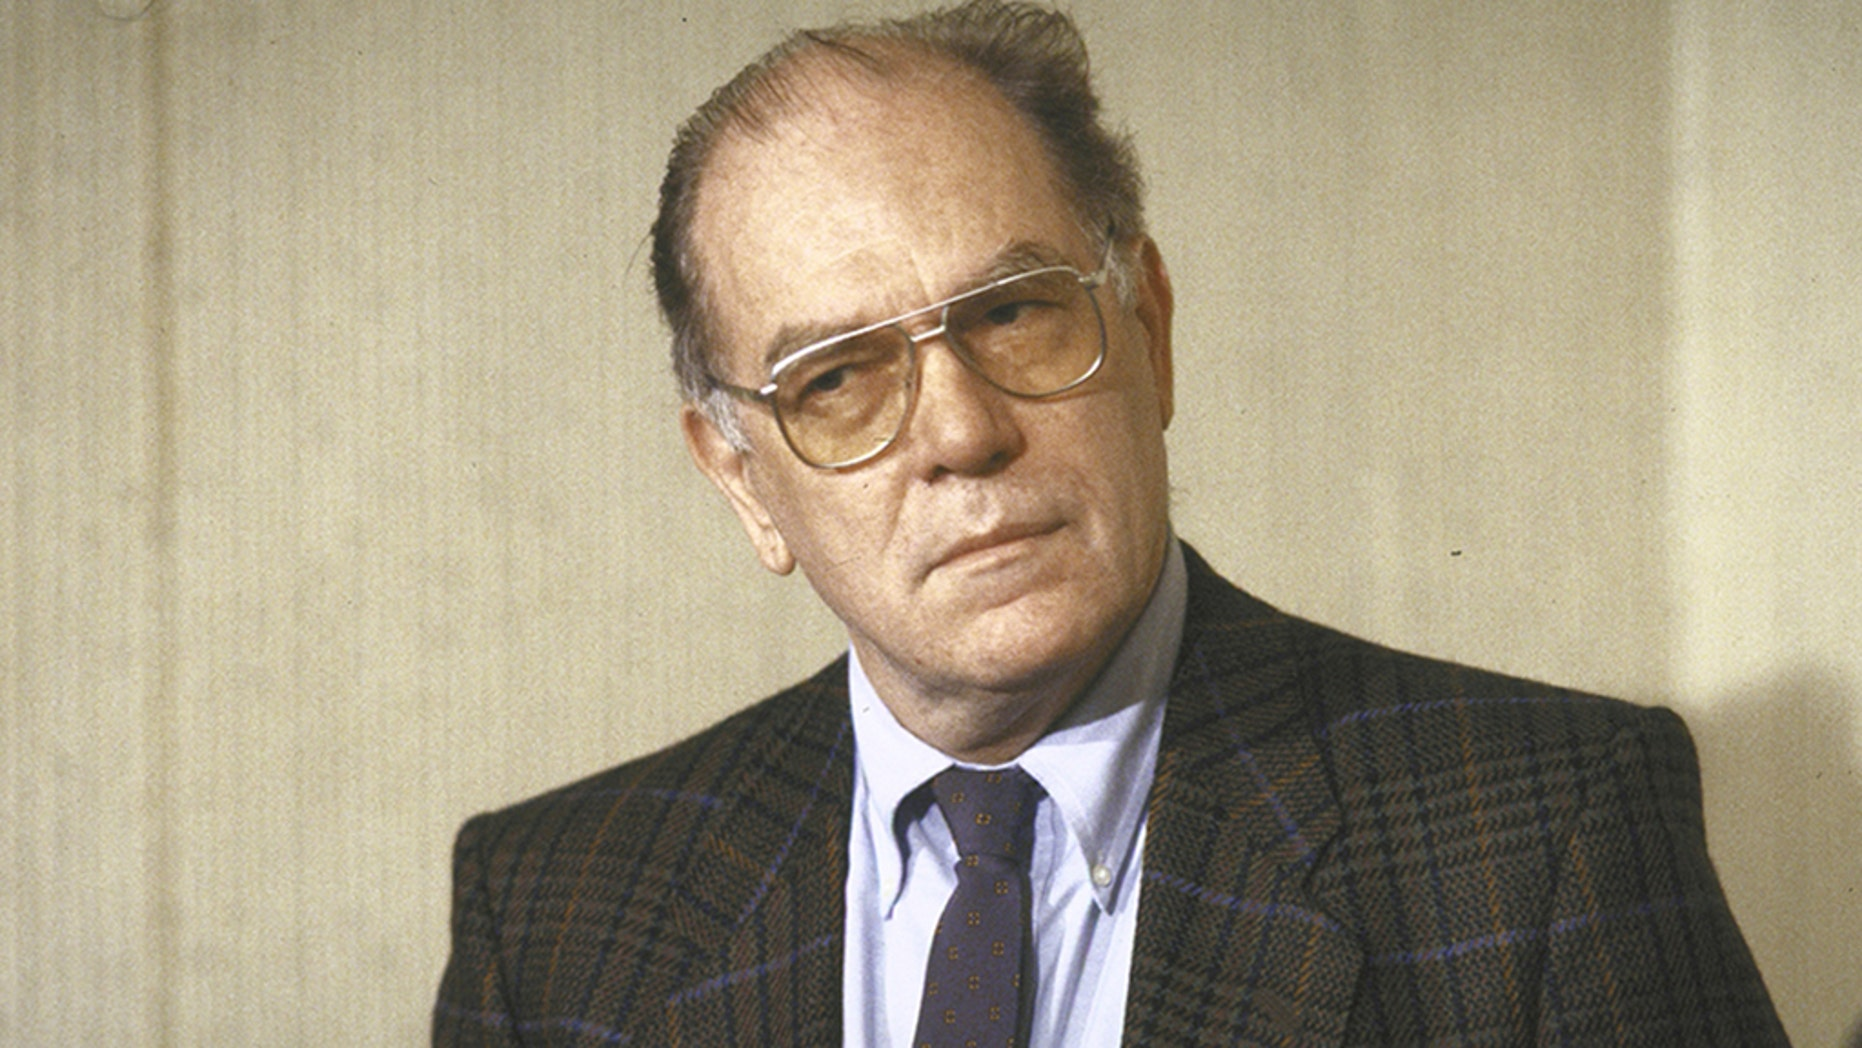 IMG LYNDON LaROUCHE, Anerican Politician and Activist